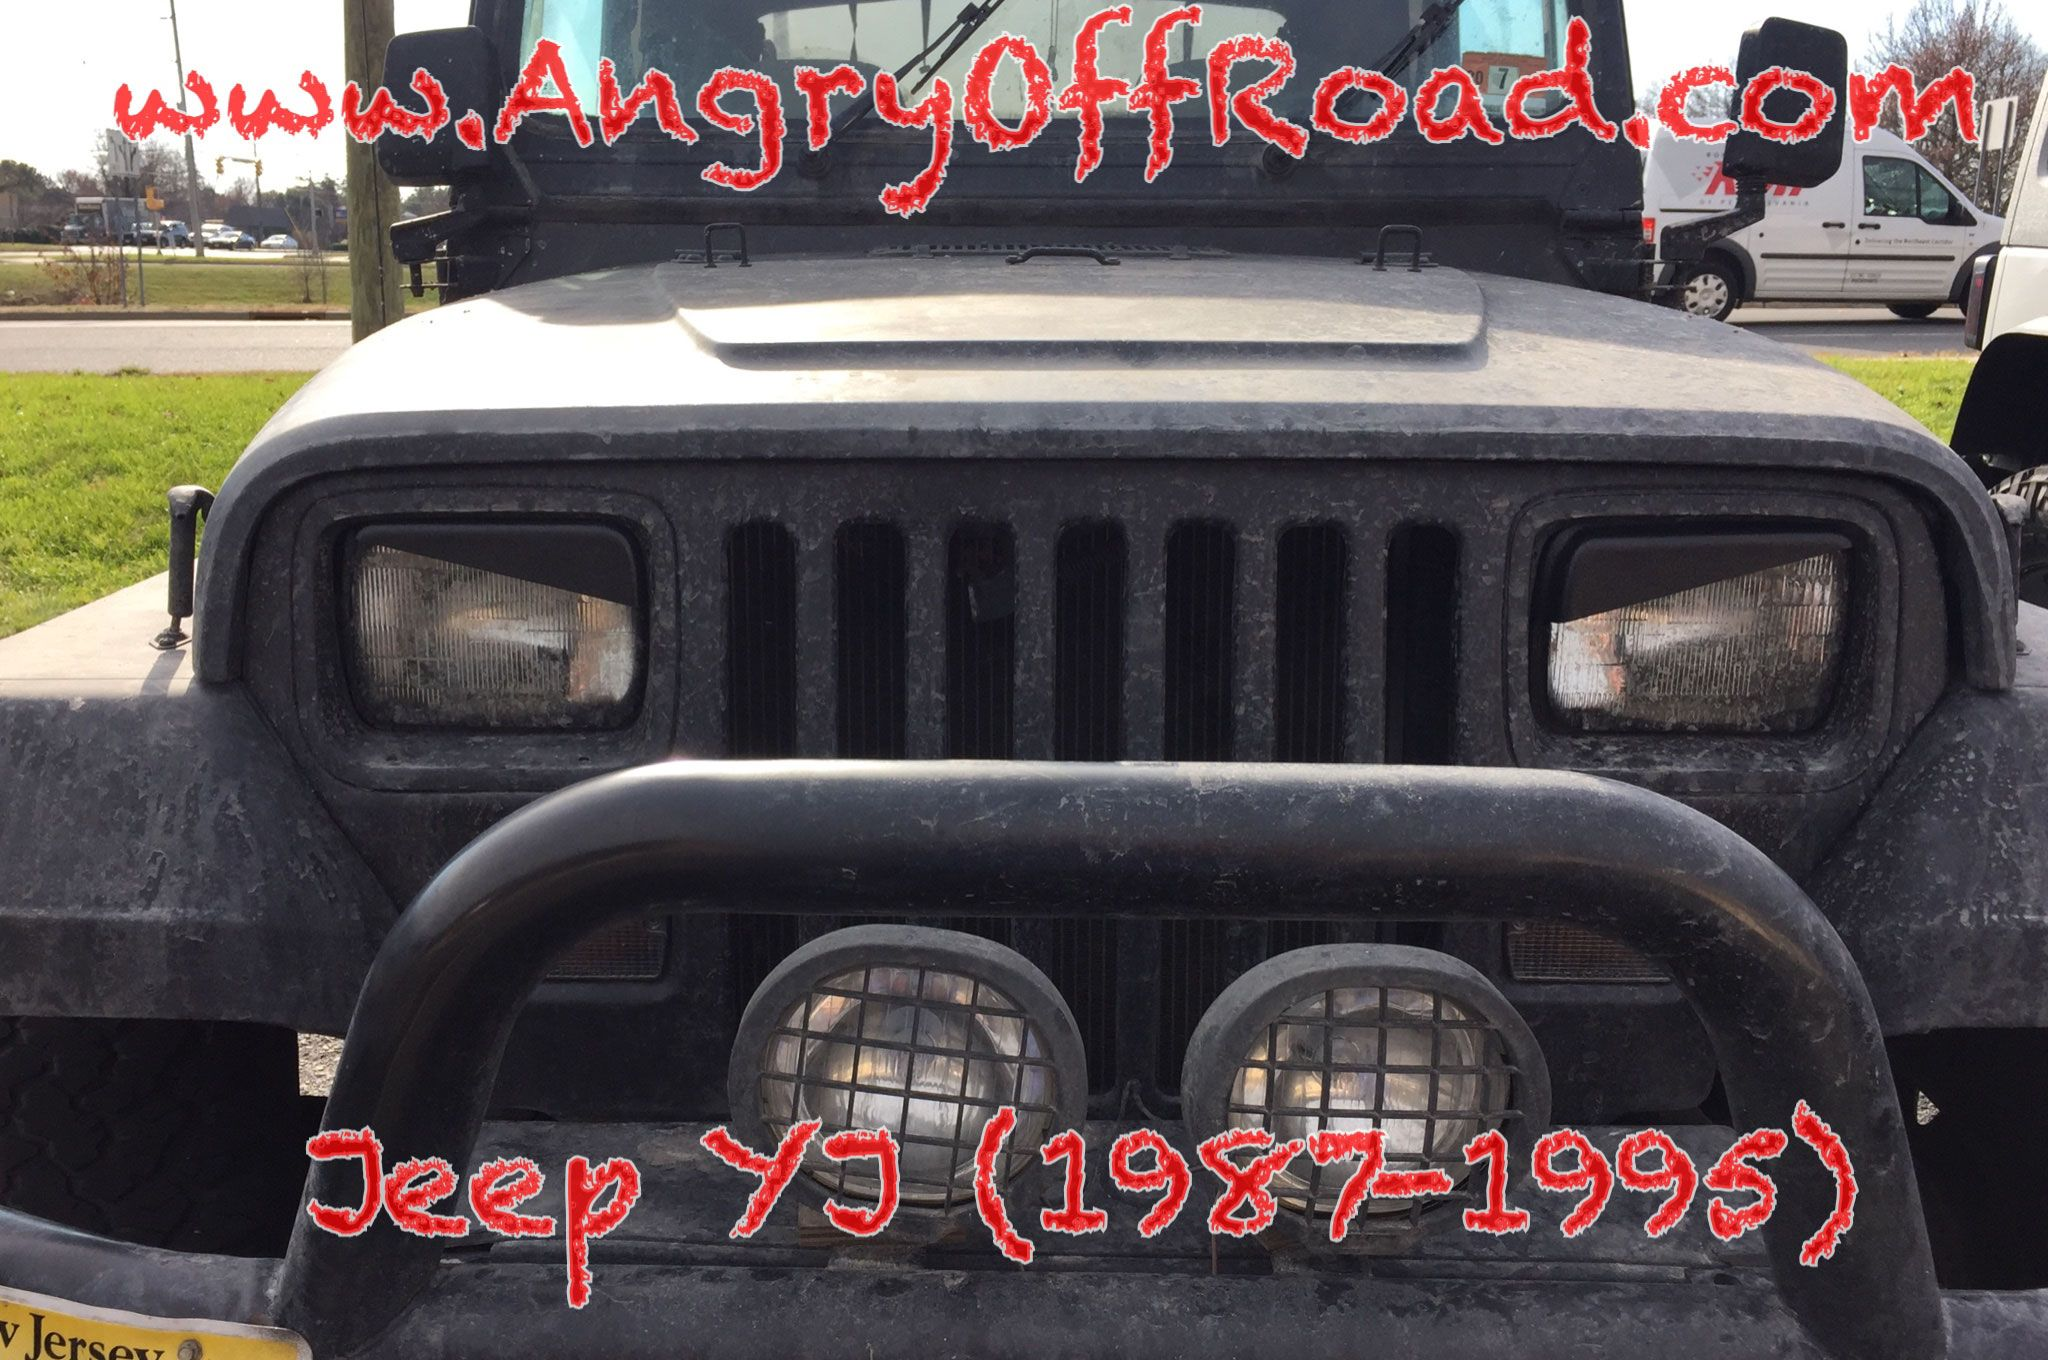 Angry Eyes For Jeep Wrangler Yj 1987 1995 Angry Eyes Jeep Headlight Covers Angry Eyes Are For Off Road Use Only Jeep Wrangler Yj Jeep Yj Jeep Accessories